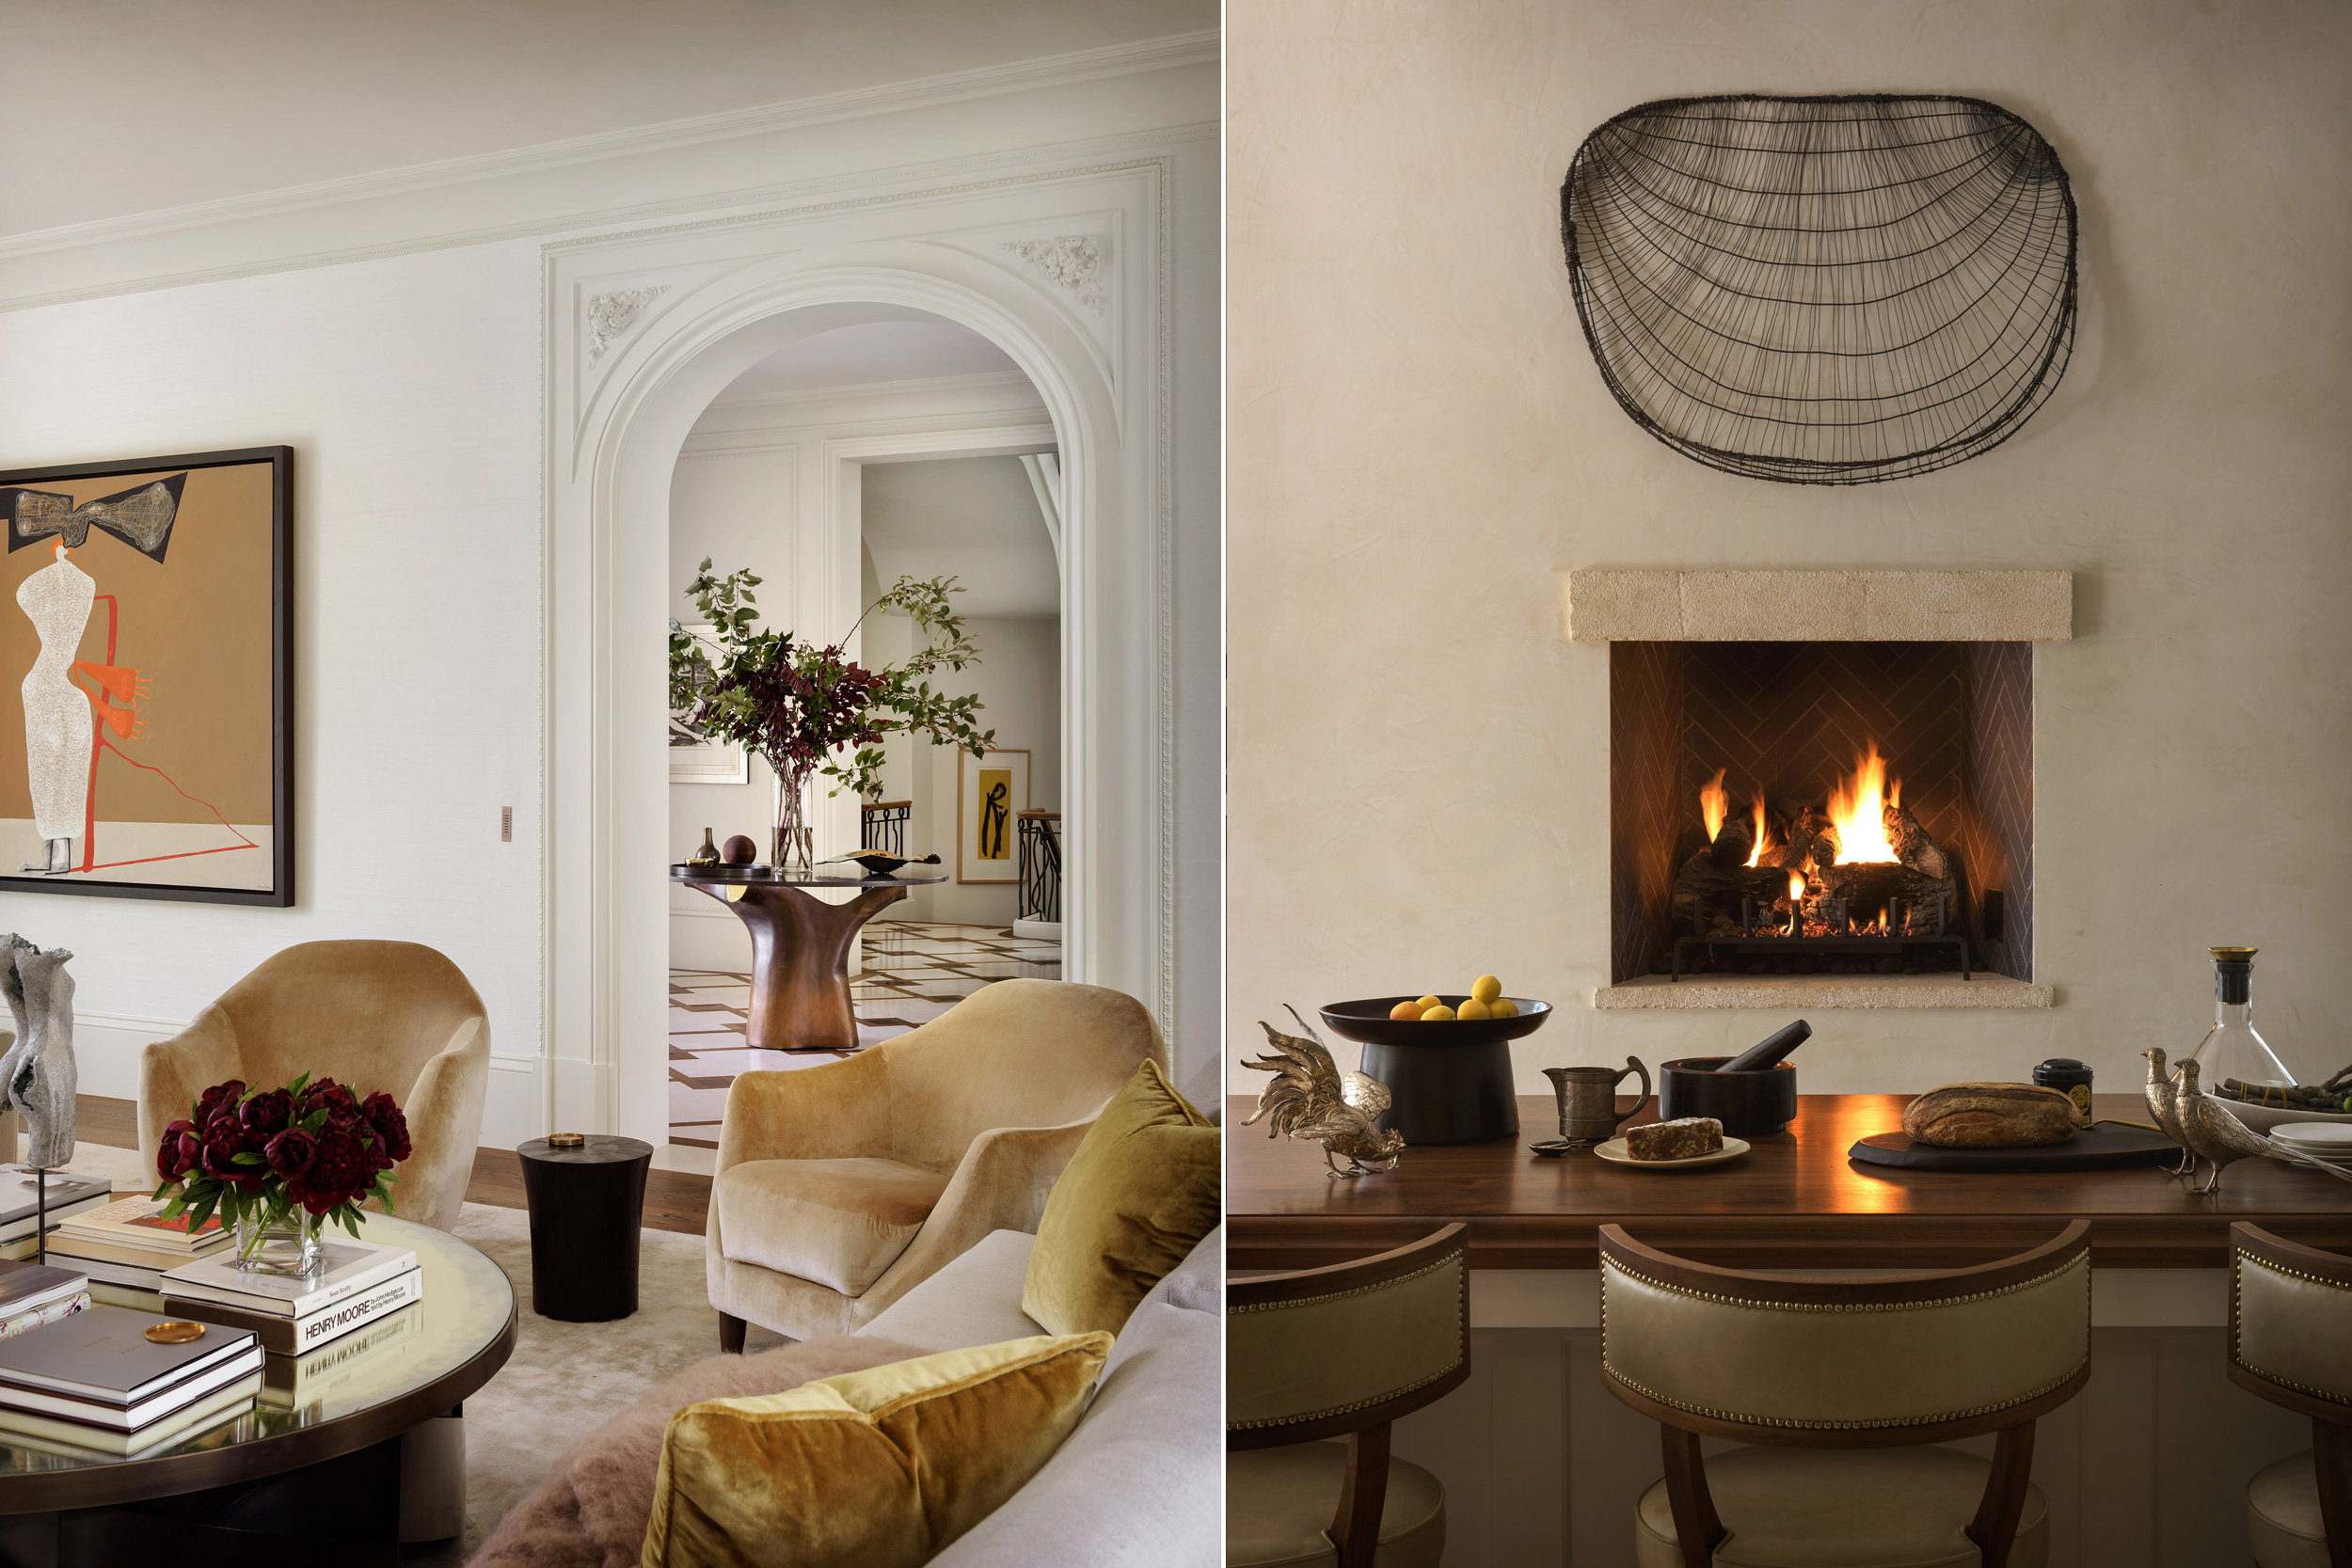 Both images, designer: Handel Architects, photo: Aaron Leitz, stylist: Yedda Morrison